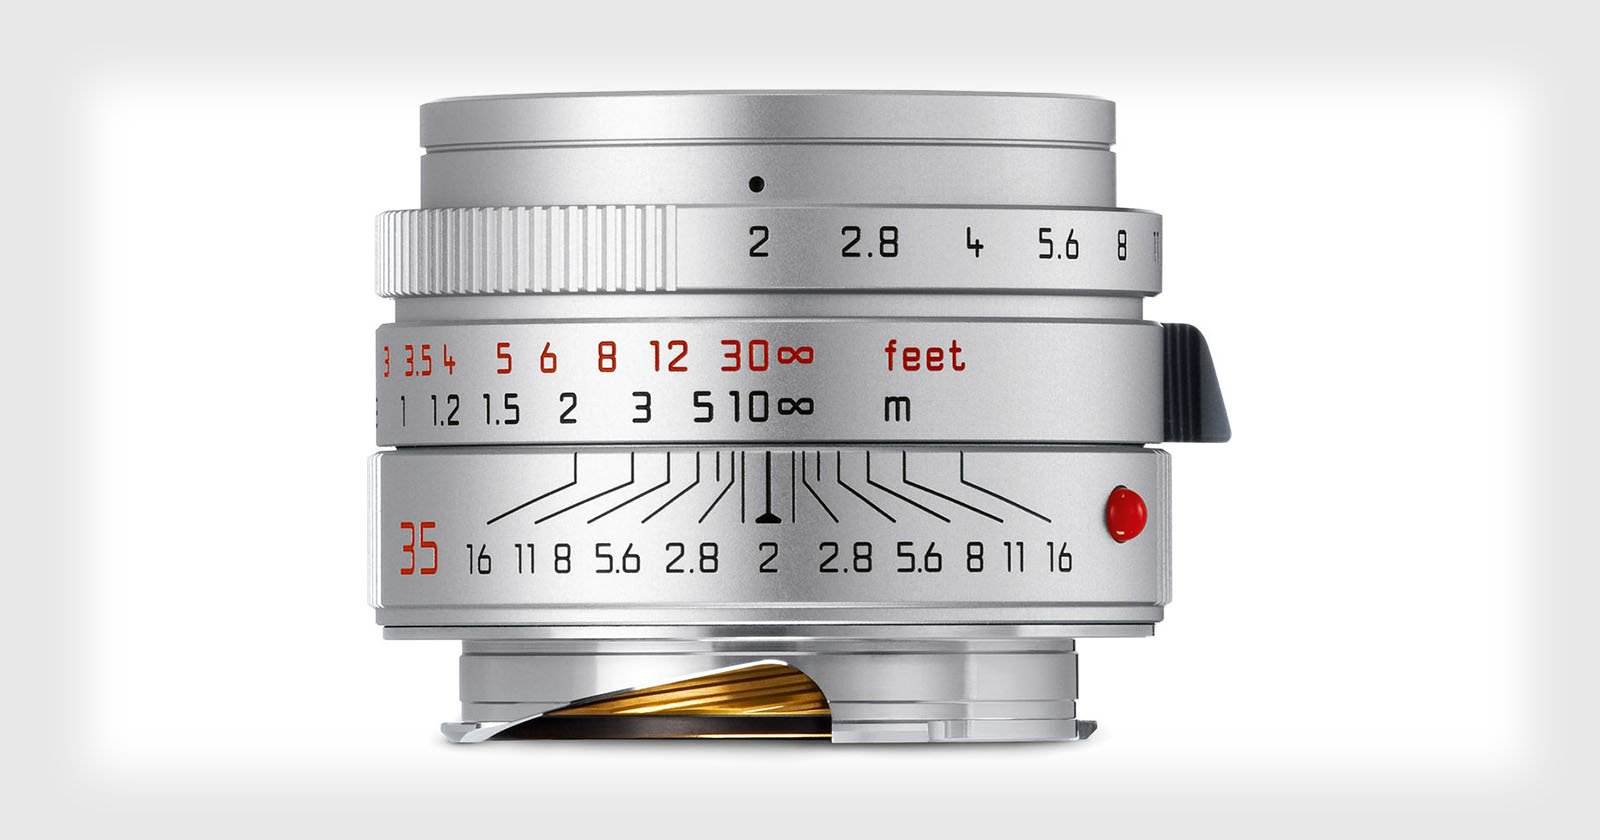 How a lost $3,500 Leica lens traveled the world to get home: https://t.co/yF8OjByc0i https://t.co/6BpV138qOt